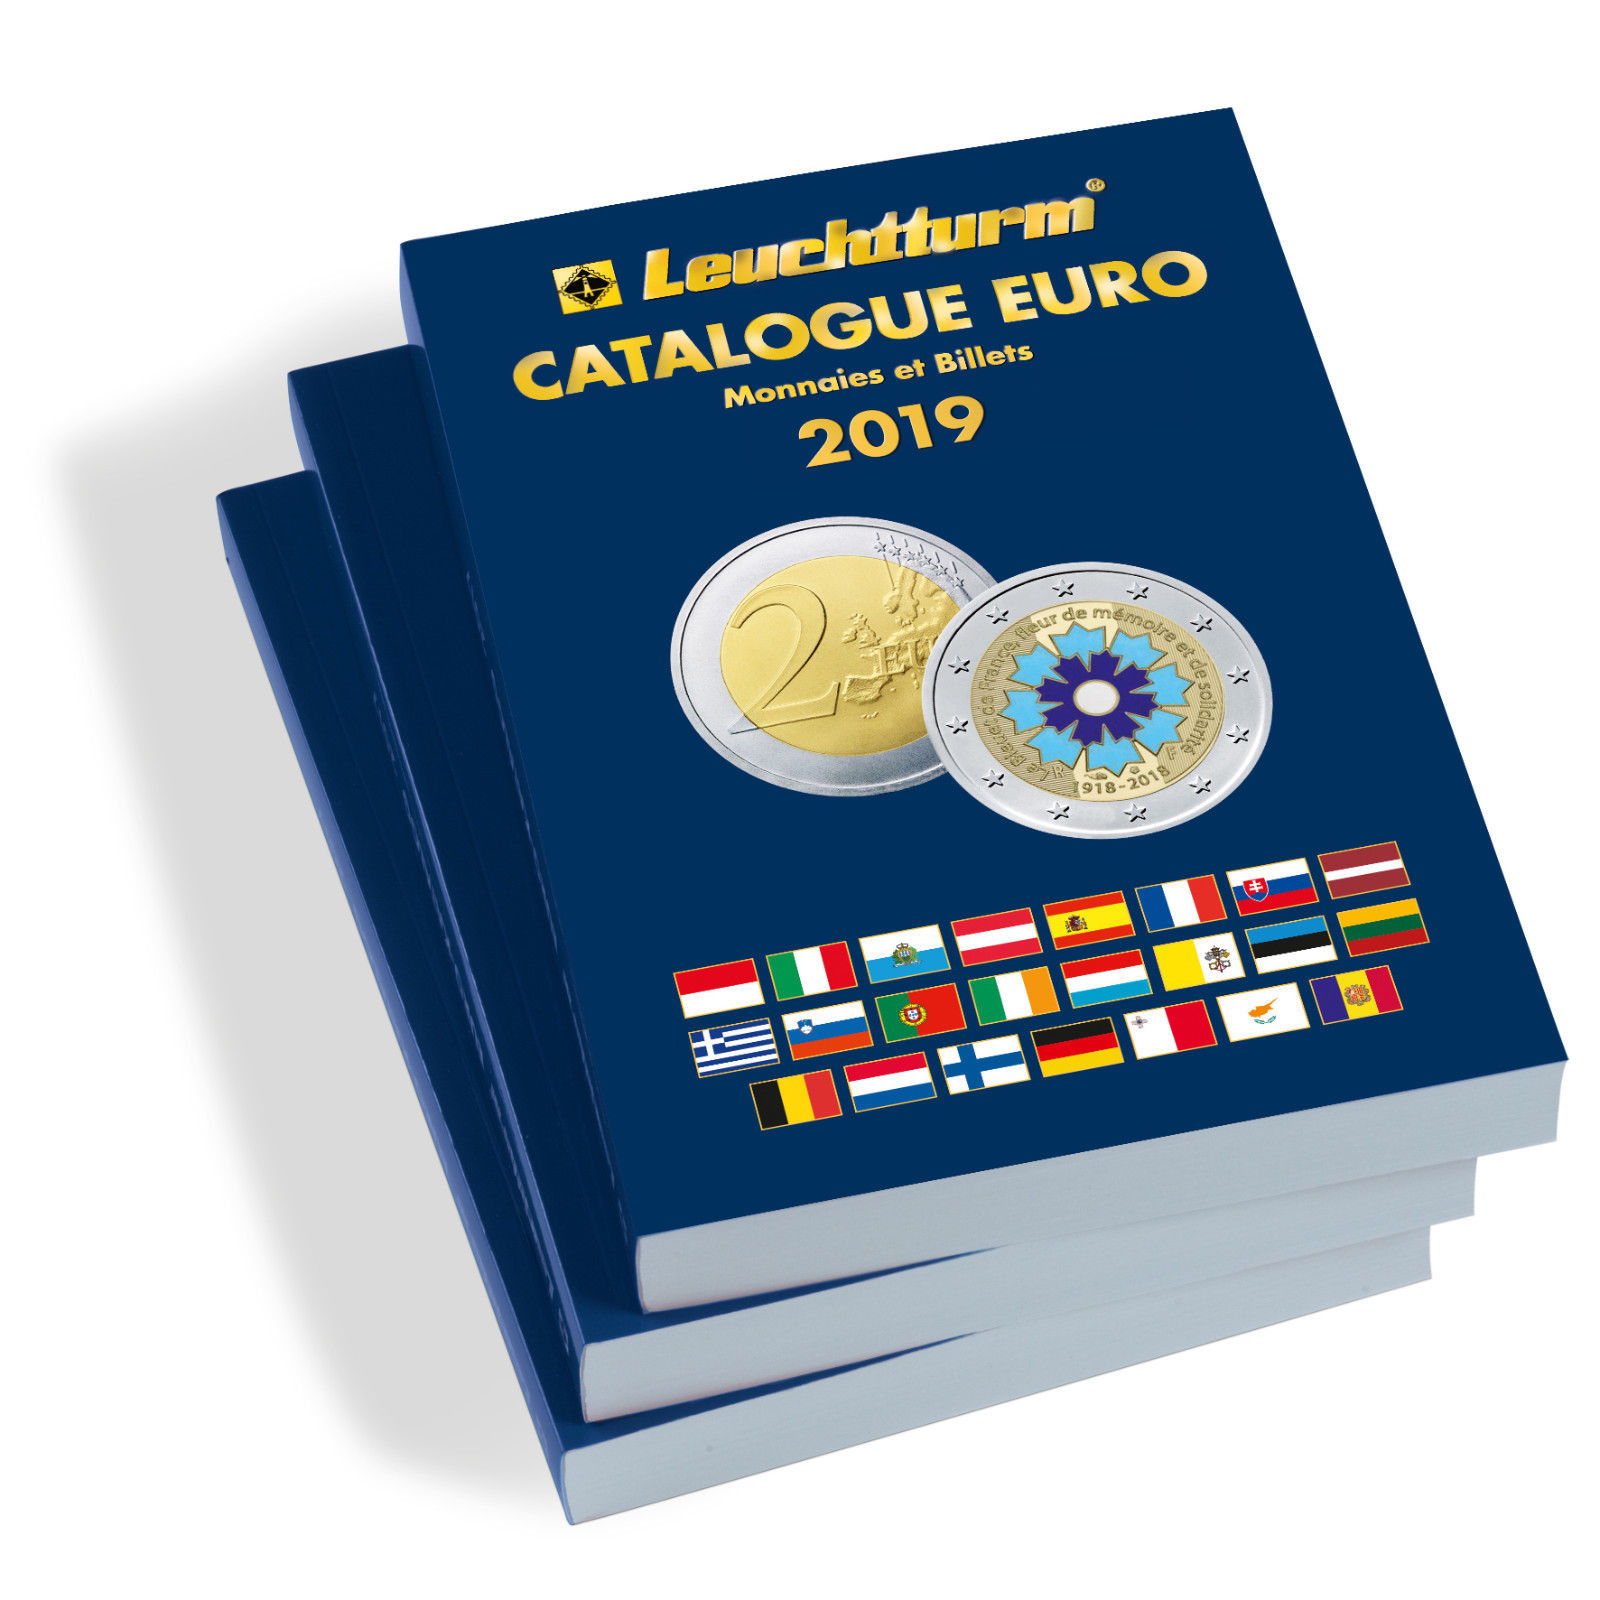 Catalogue euro 2019 Leuchtturm